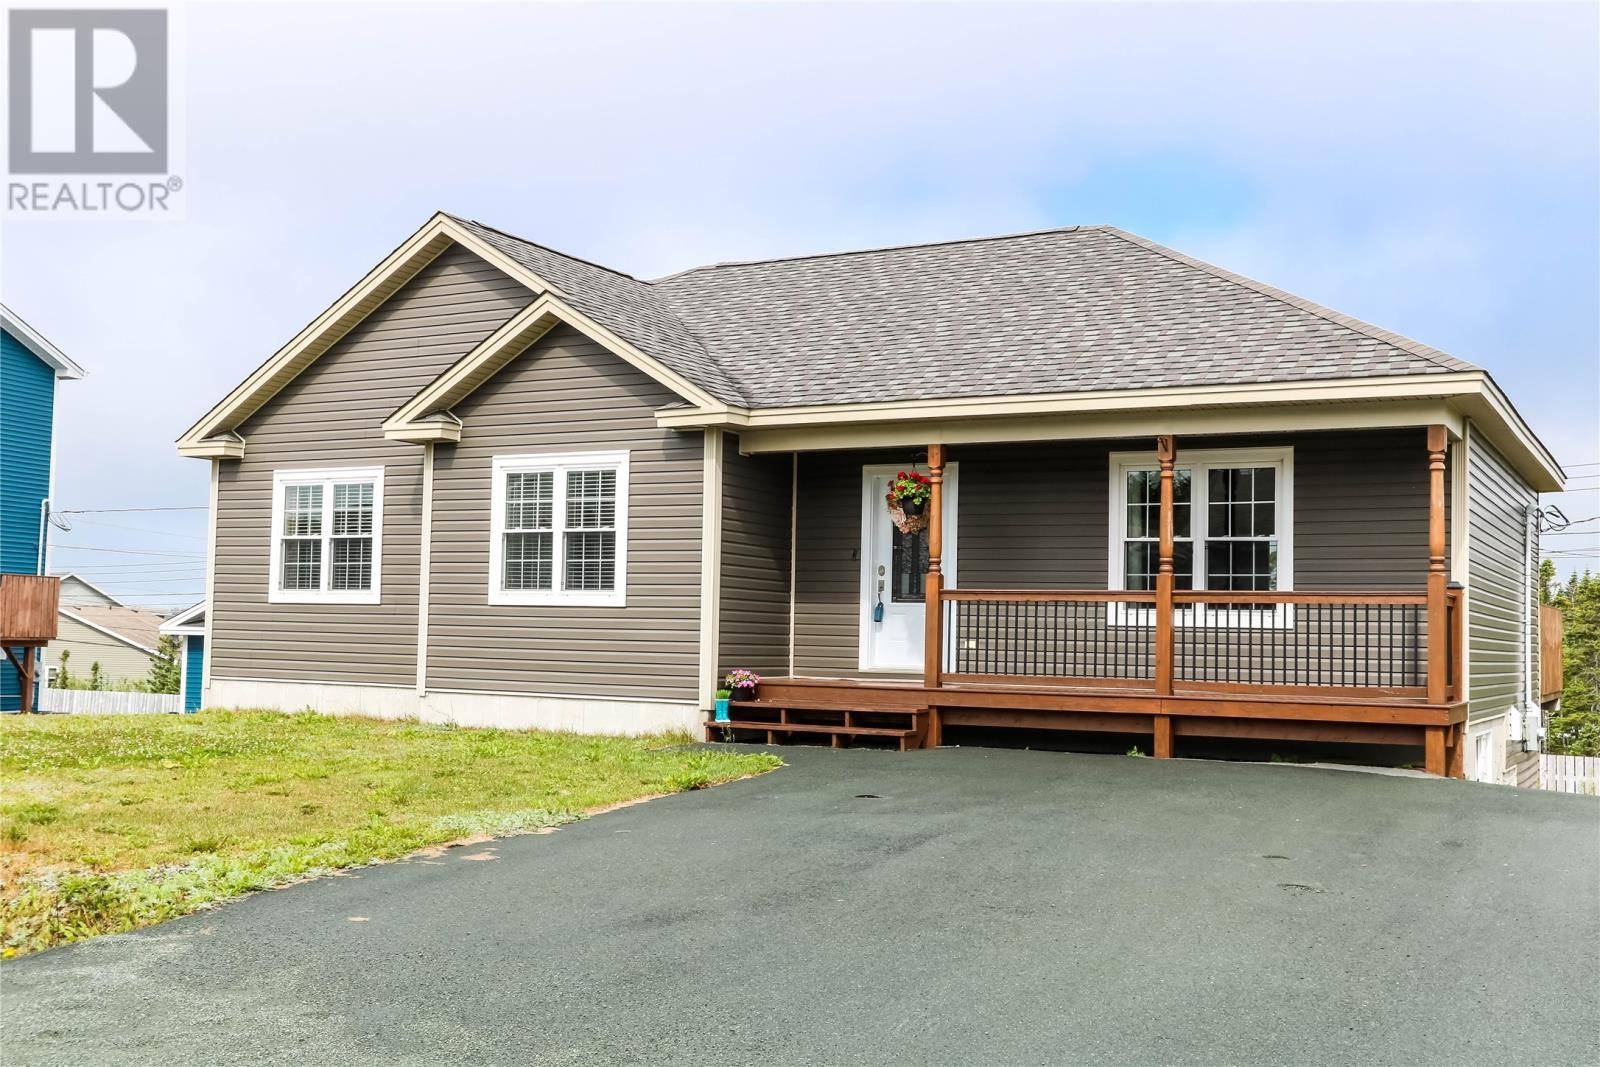 House for sale at 15 Newbury St Portugal Cove Newfoundland - MLS: 1208844